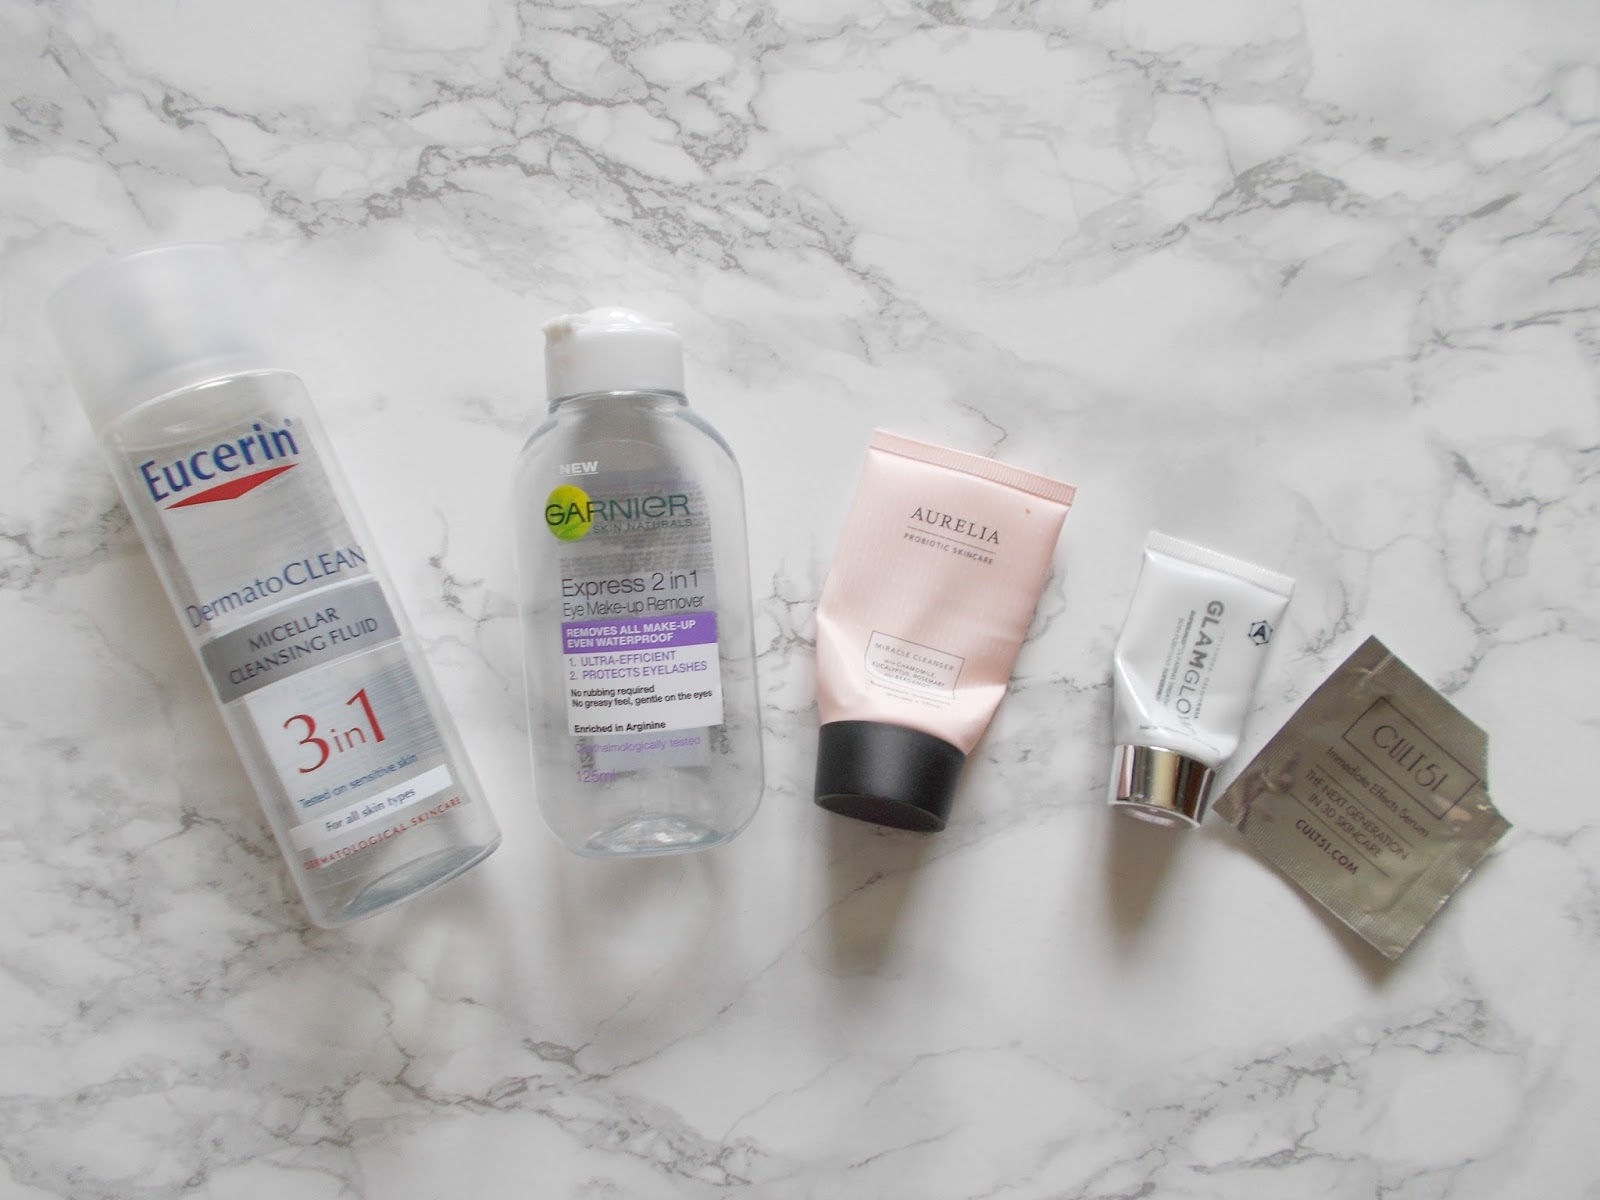 skincare empties review eucerin dermatoclean micellar garnier express eye makeup remover aurelia miracle cleanser glamglow cult 51